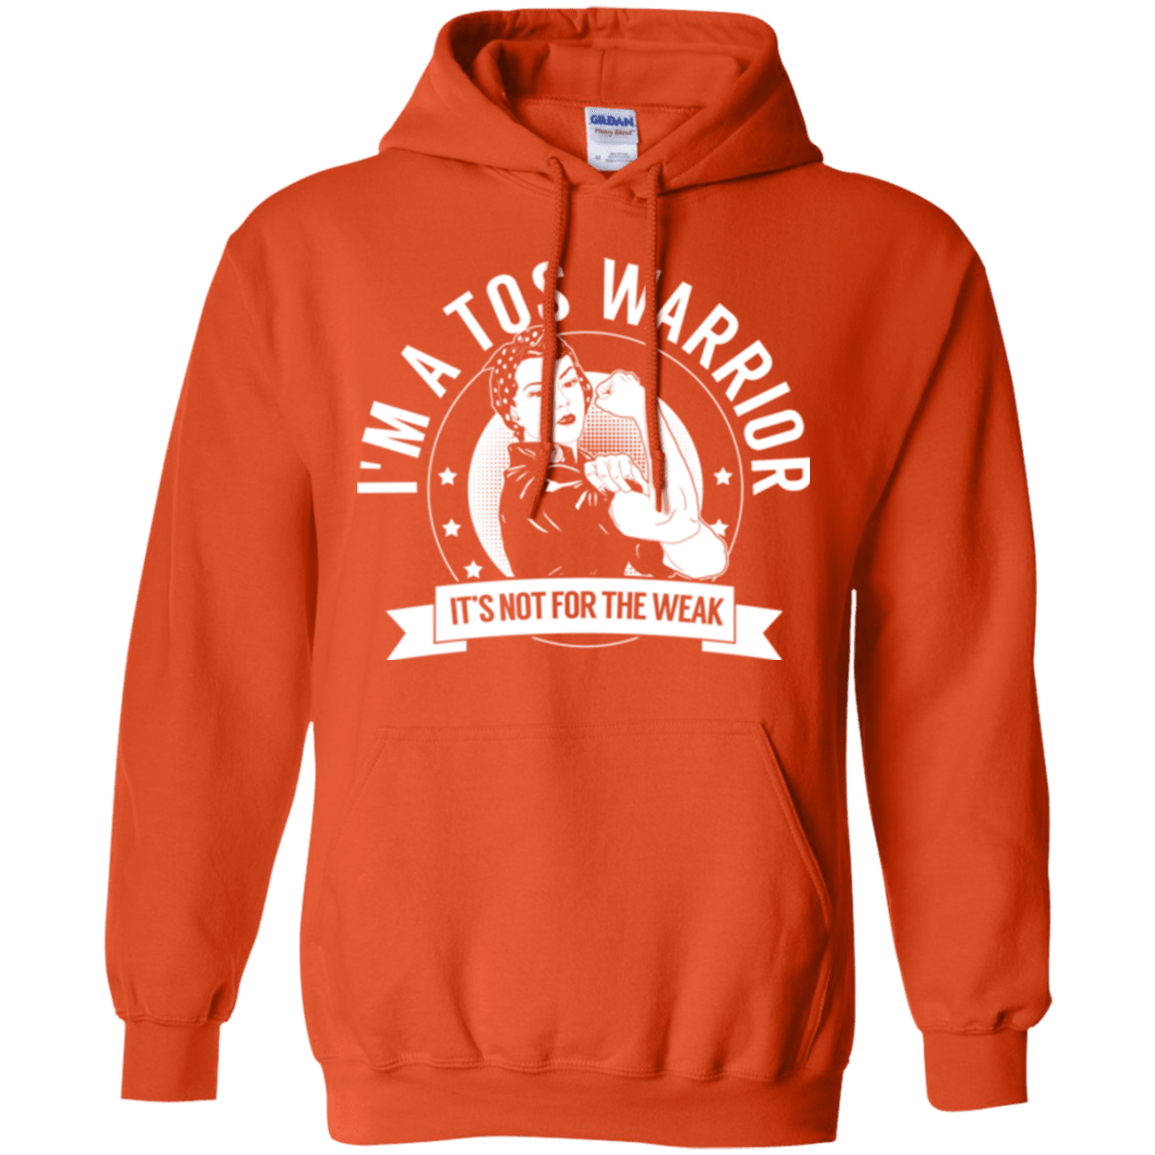 Sweatshirts - Thoracic Outlet Syndrome - TOS Warrior Not For The Weak Pullover Hoodie 8 Oz.